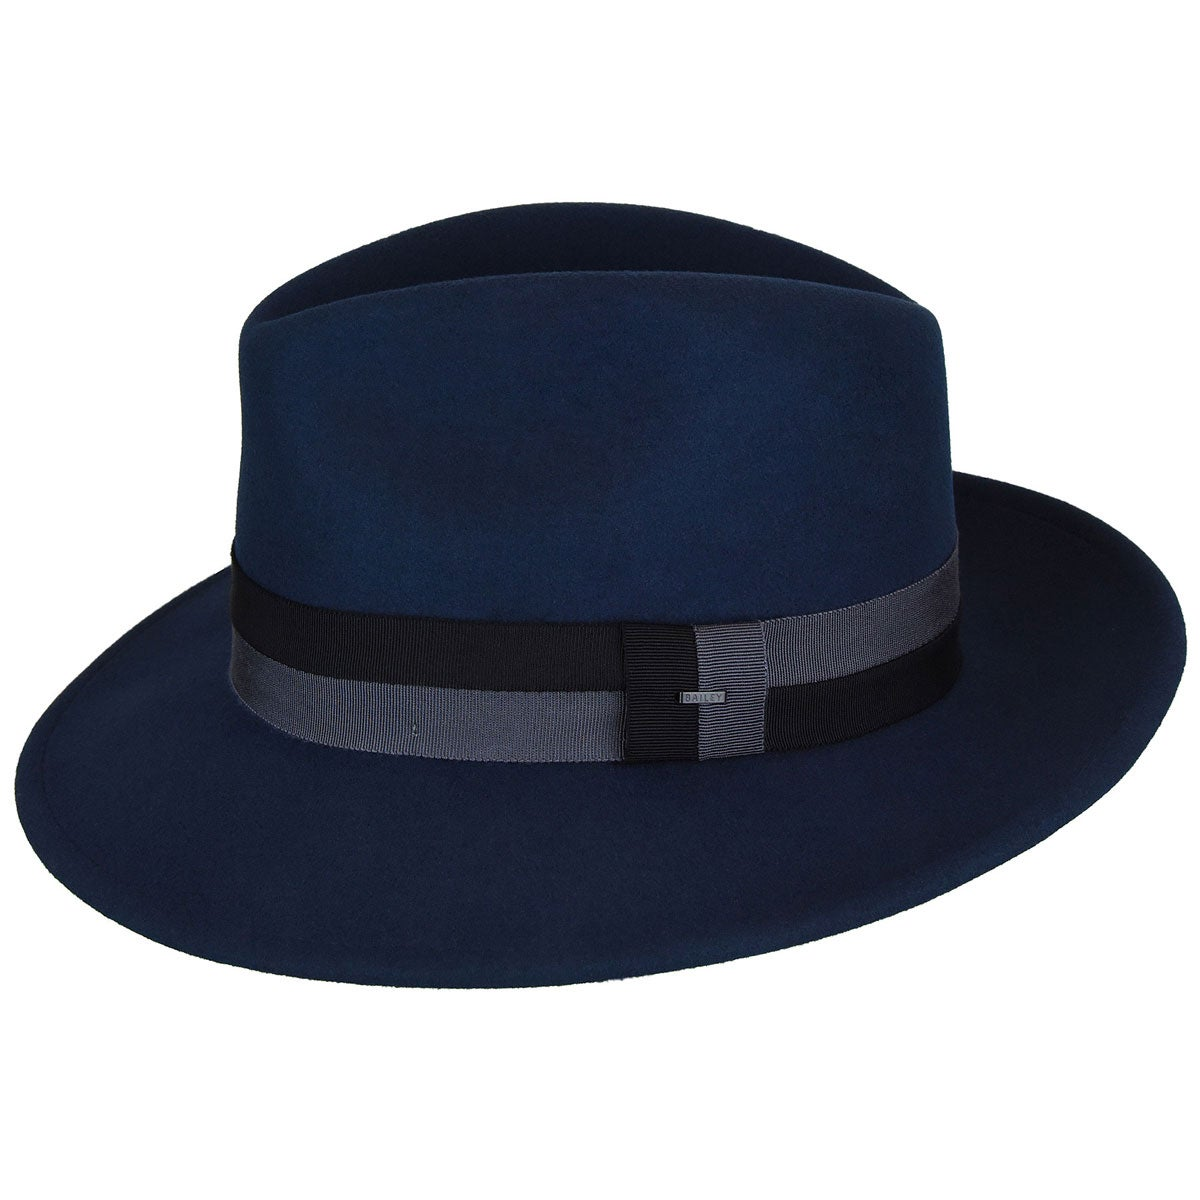 Bailey of Hollywood Bidwell Fedora in Eclipse